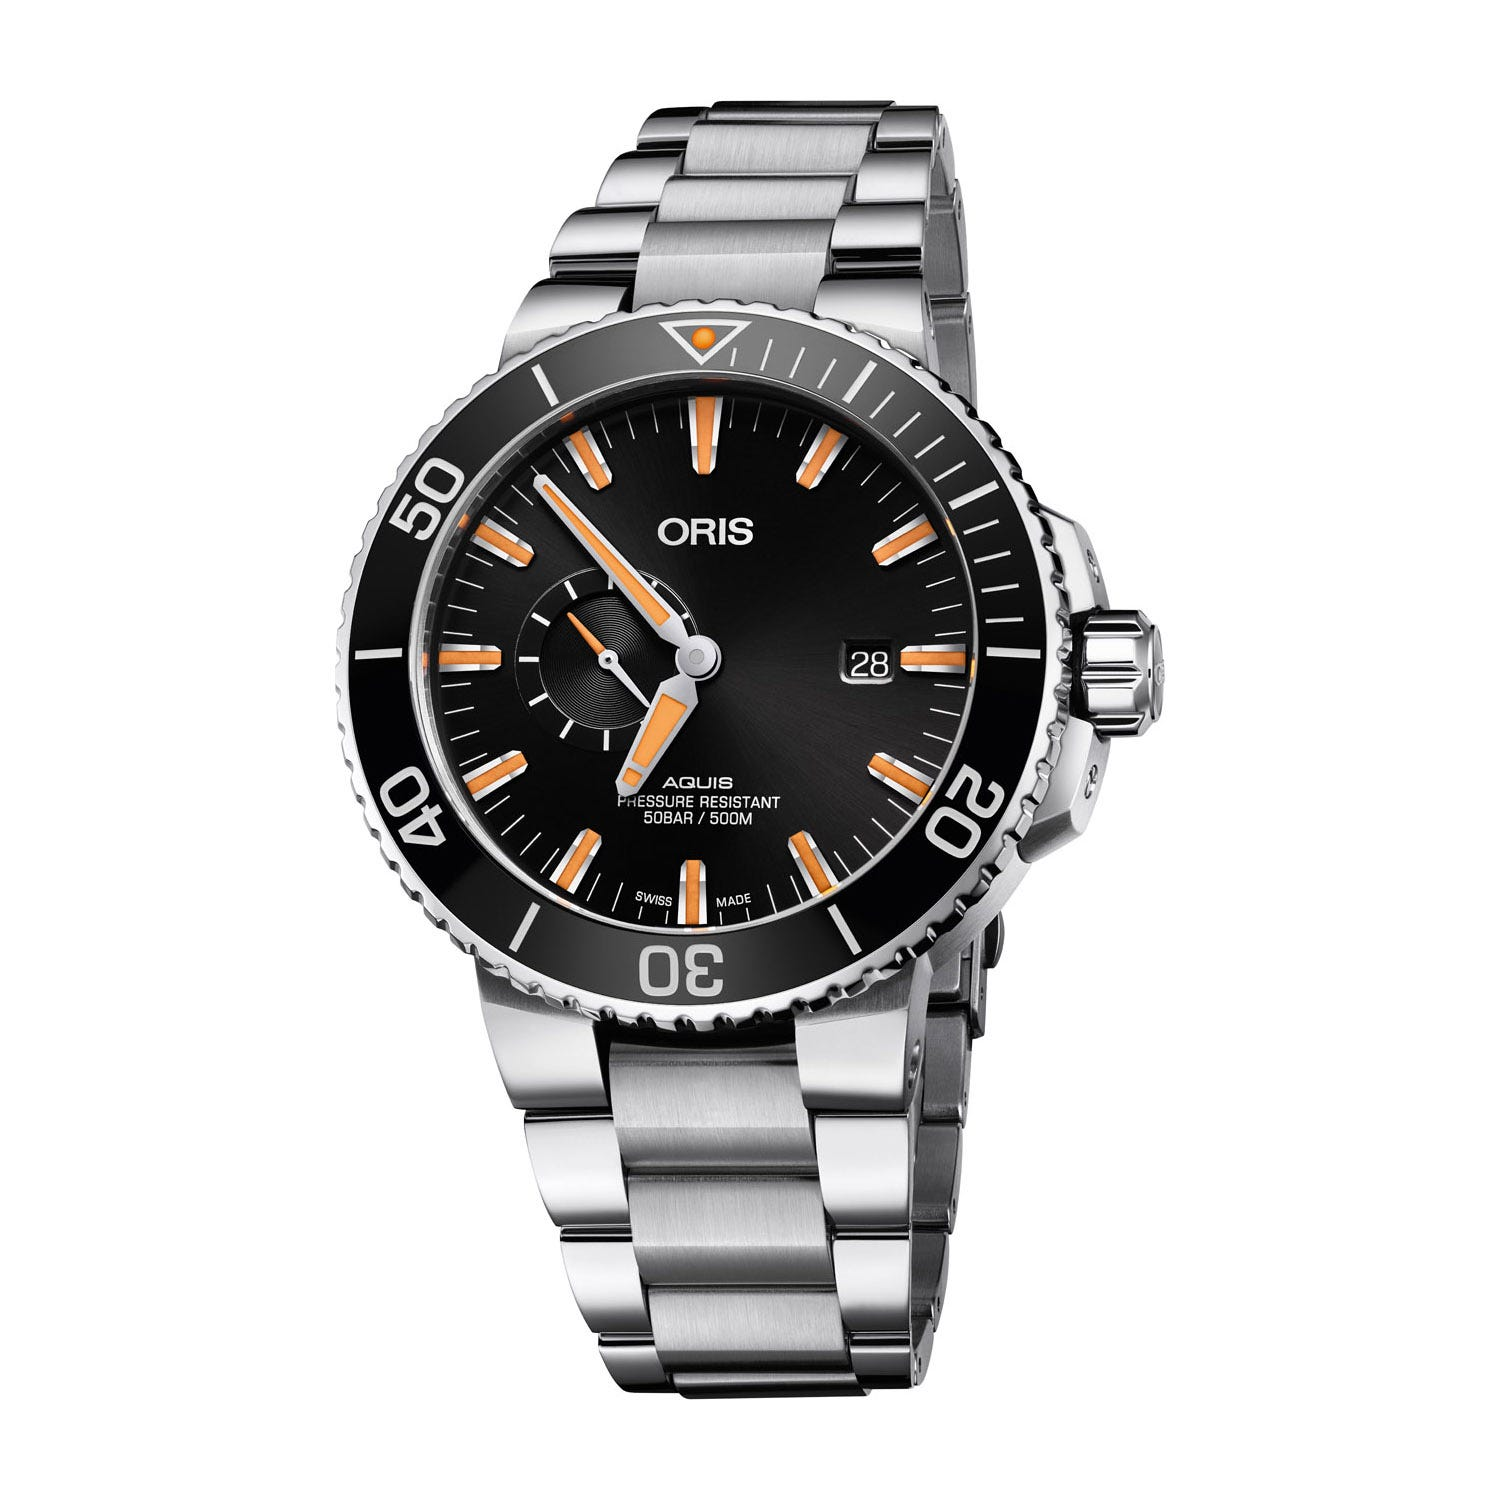 Oris Aquis Automatic Small Second Display Black Dial and Bezel Mens Watch